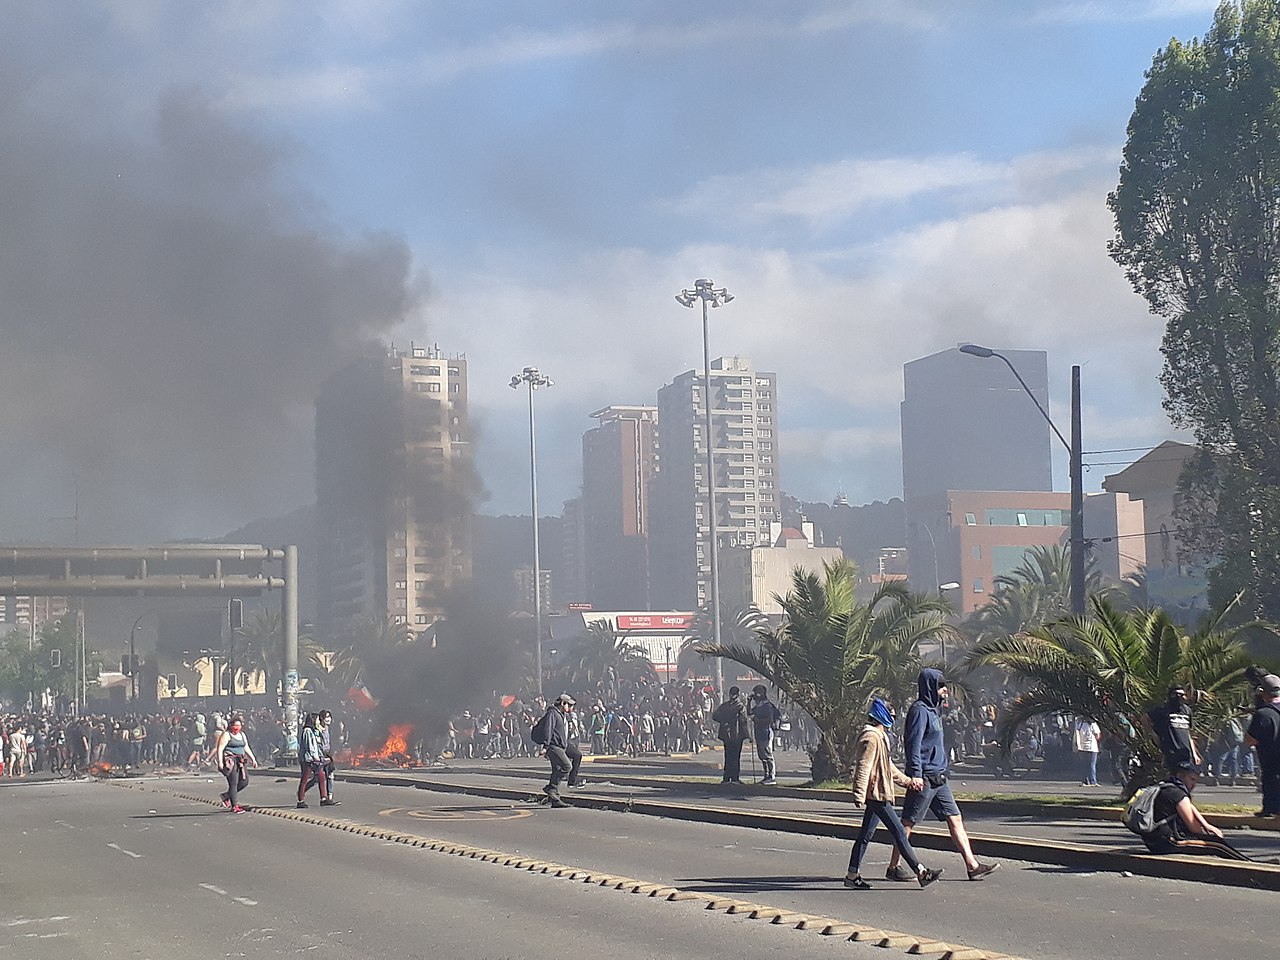 Chile: An exhausted country plunged into chaos